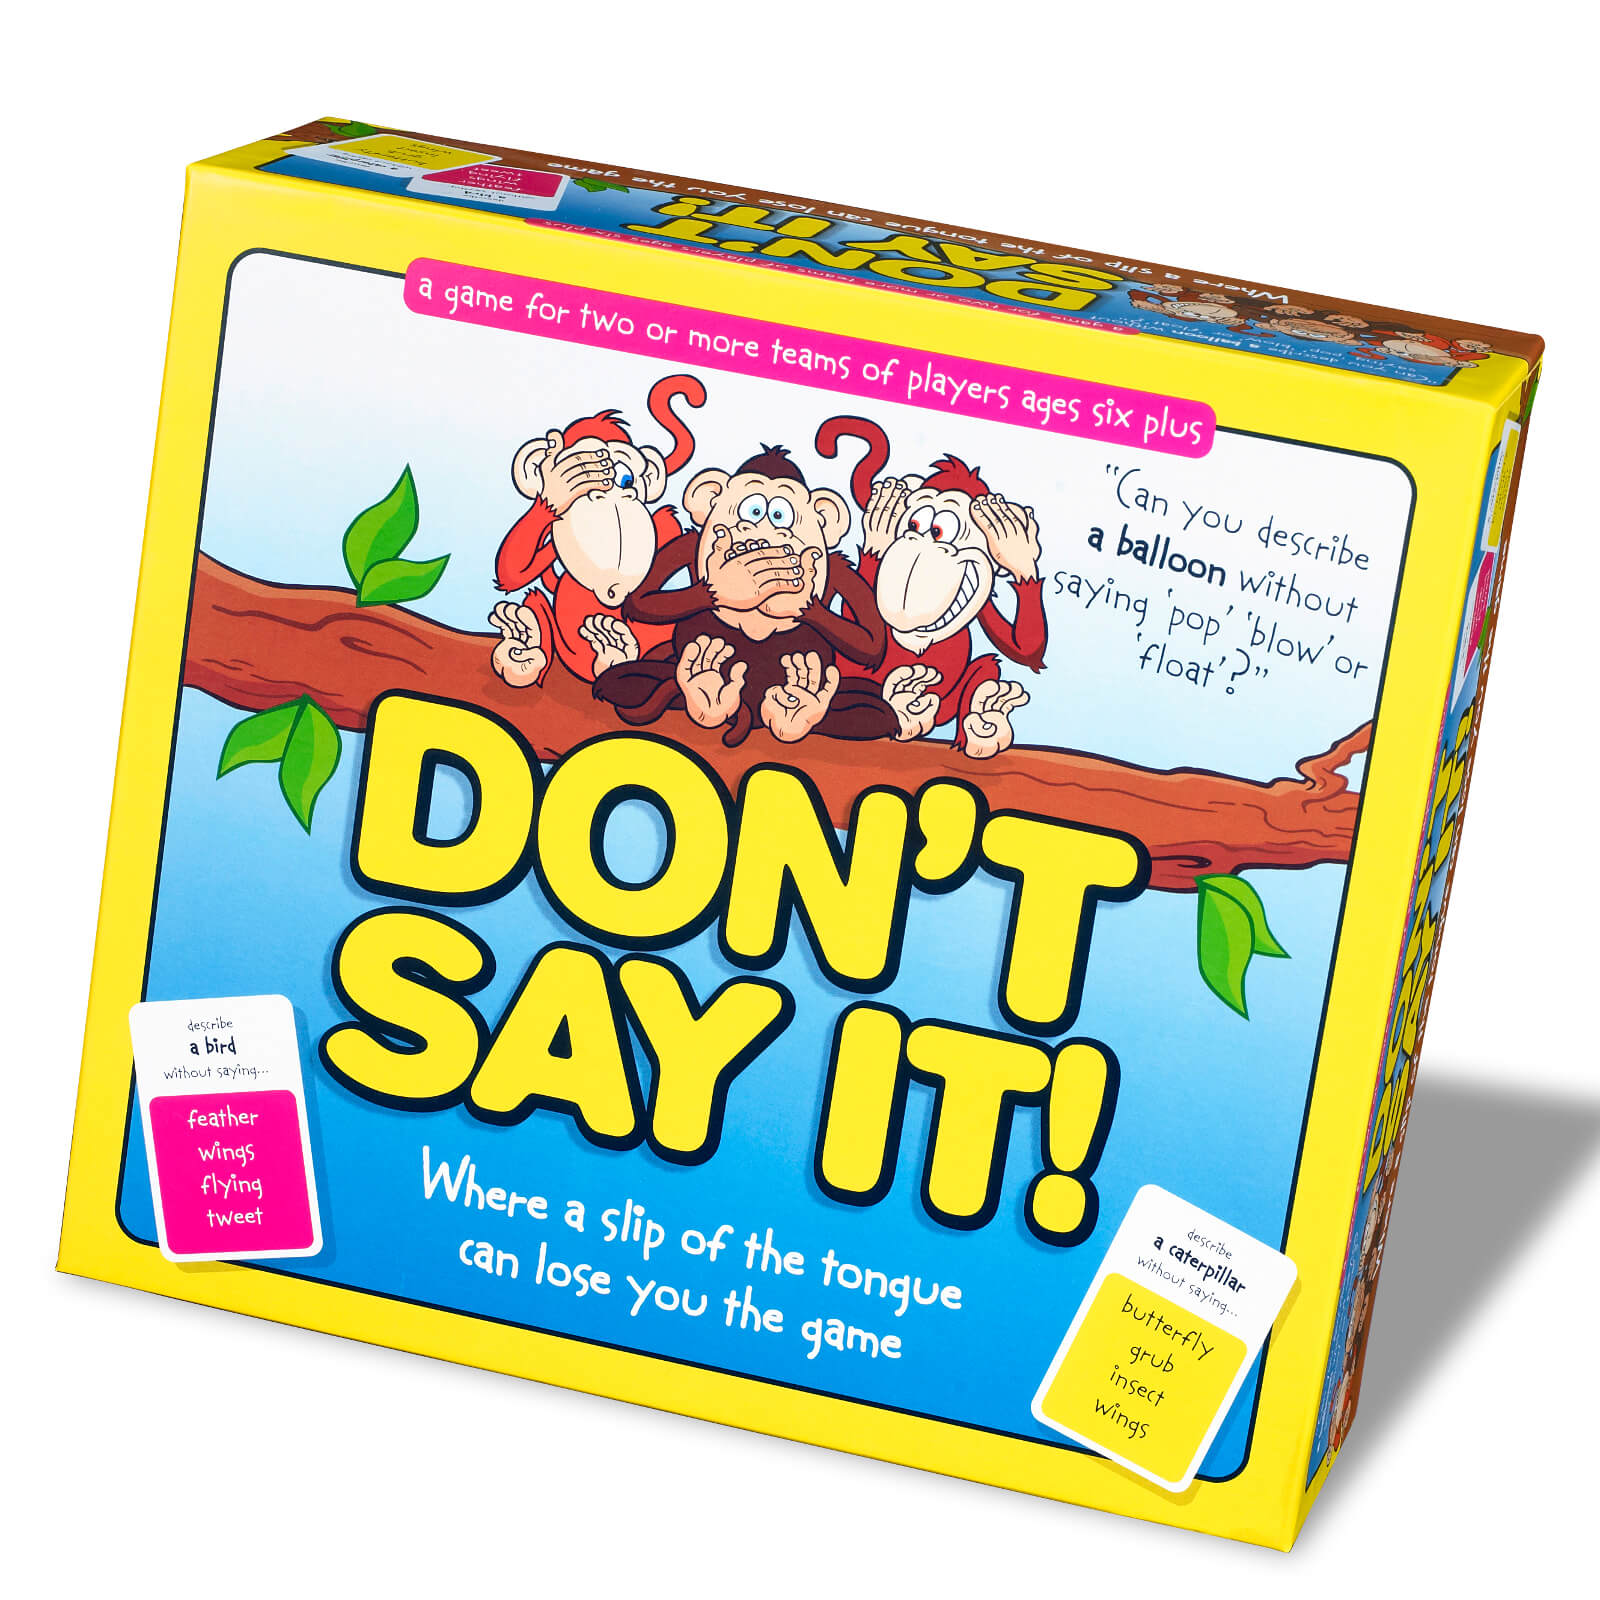 Image of Don't Say It Game